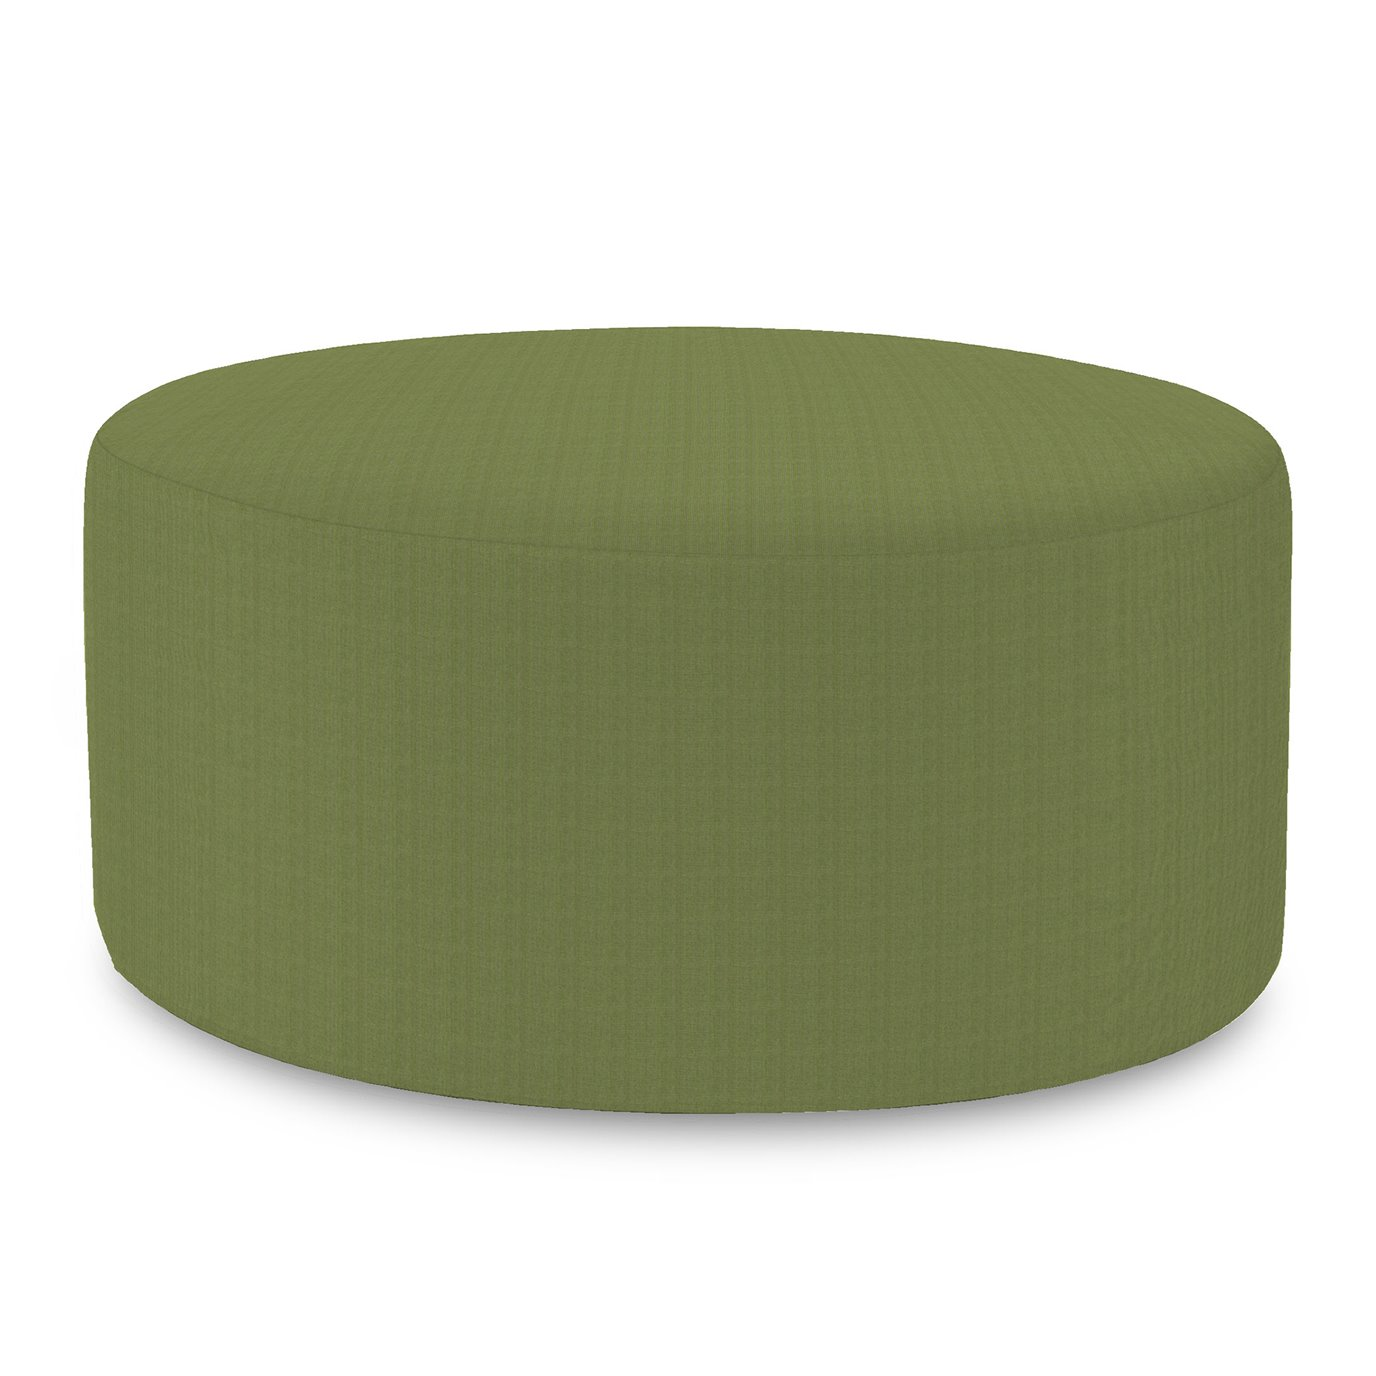 Howard Elliott Universal Round Ottoman Cover Sunbrella Outdoor Seascape Moss - Cover Only, Base Not Included